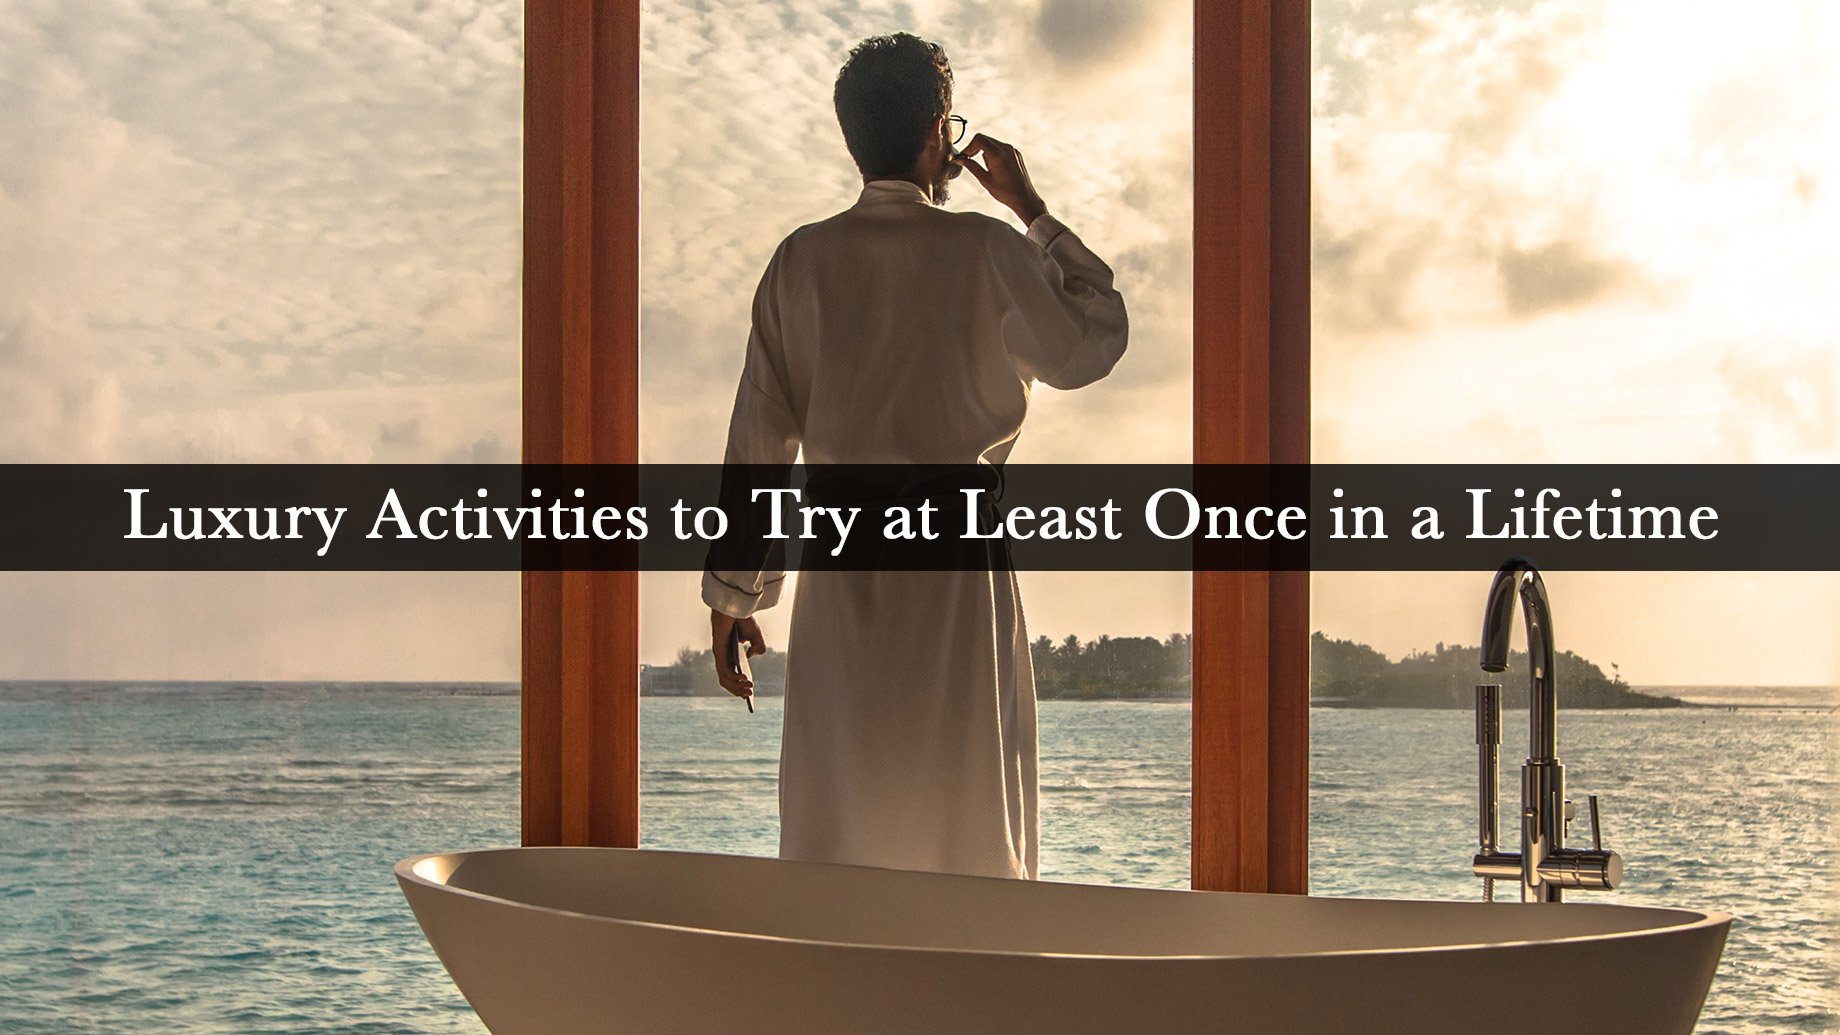 Luxury Activities to Try at Least Once in a Lifetime